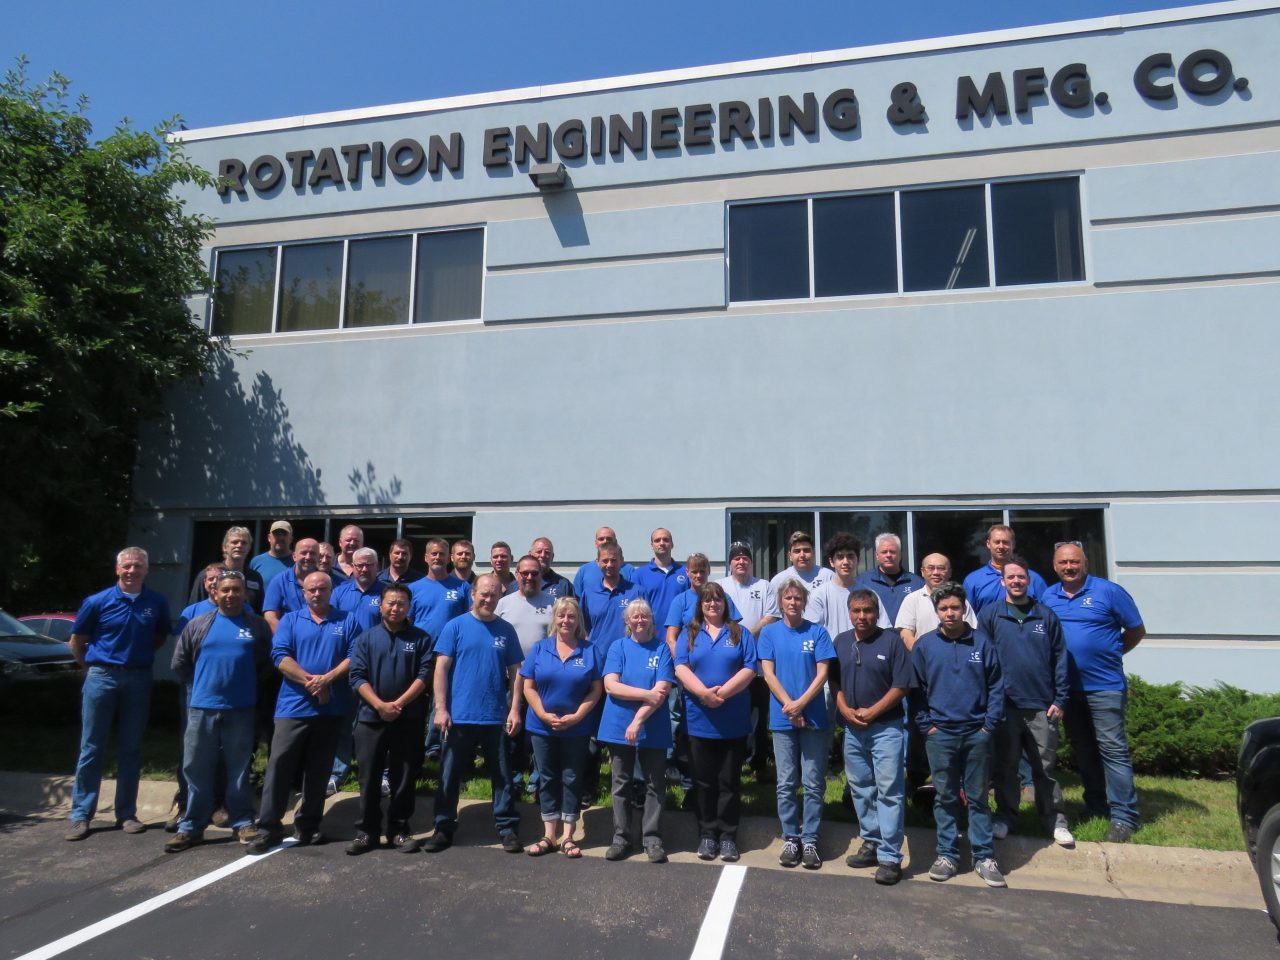 Rotation Engineering & Manufacturing Team Photo